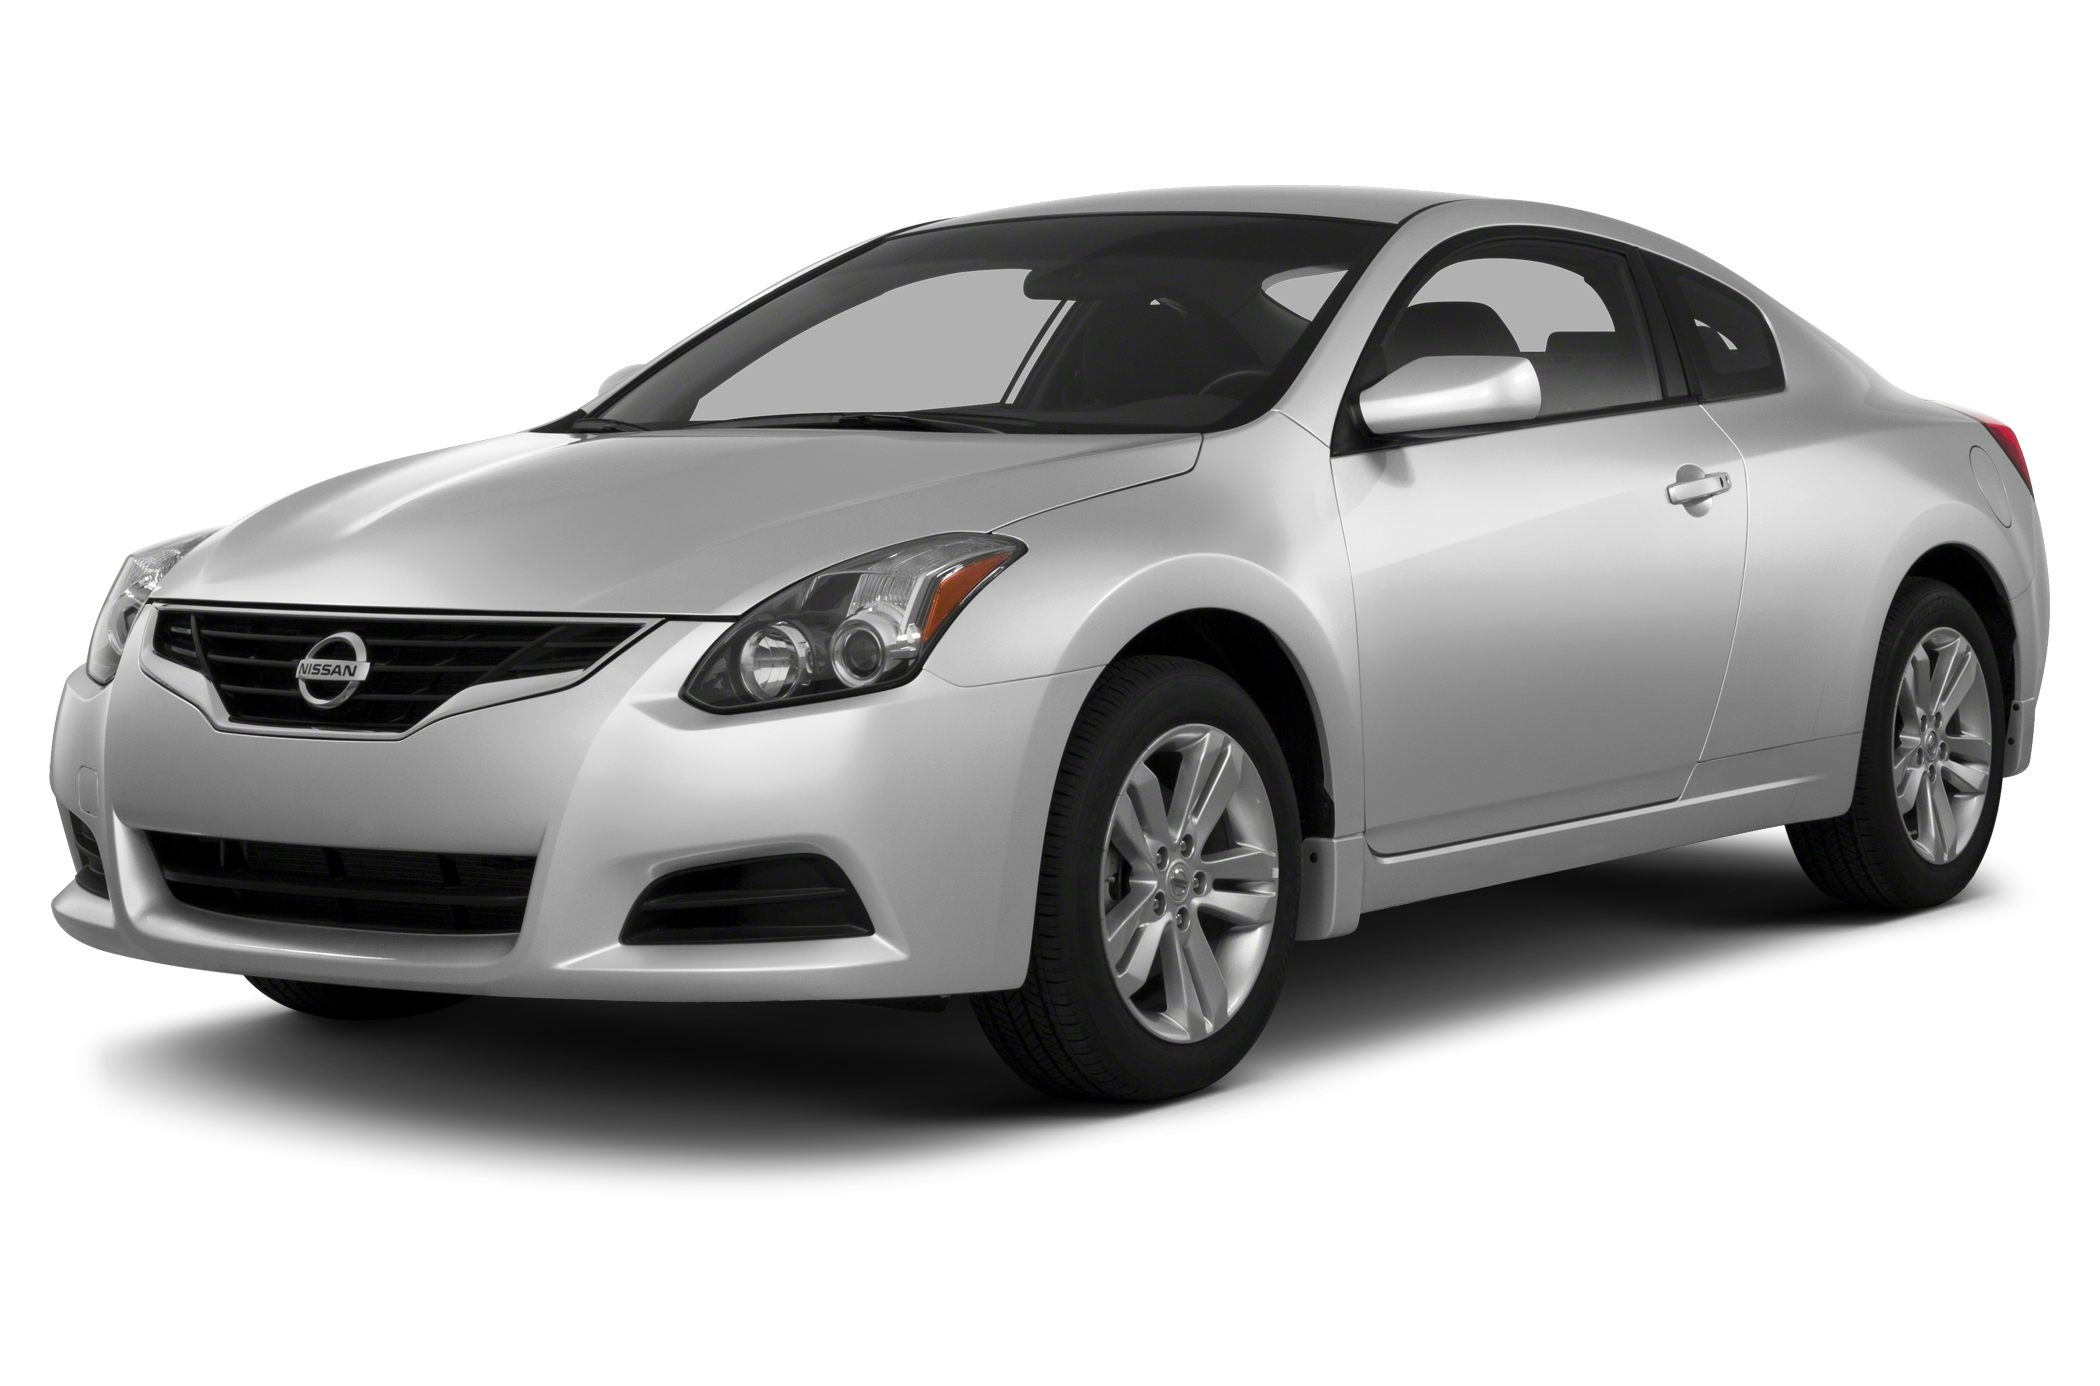 2013 nissan altima 25 s 2dr coupe pricing and options vanachro Gallery